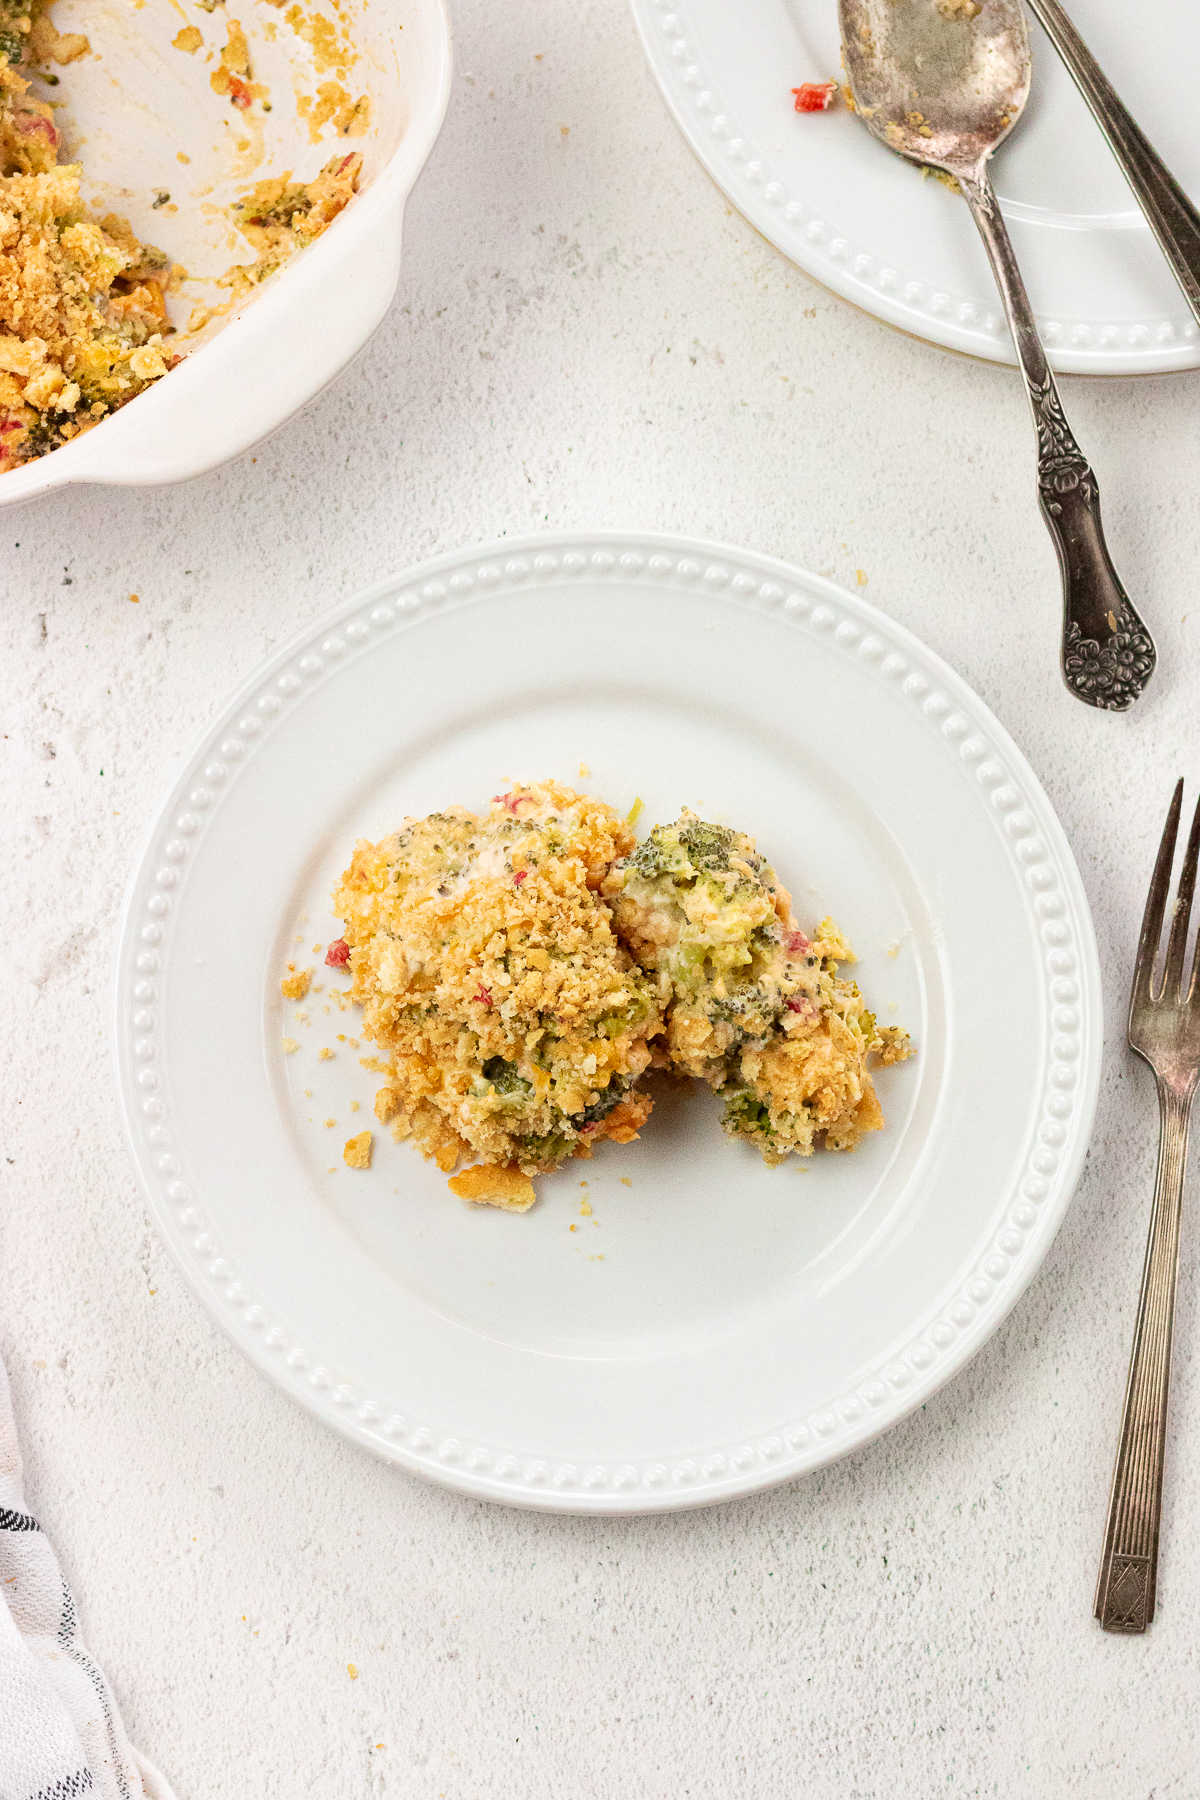 Overhead shot of a serving of broccoli cheese casserole on a white plate.